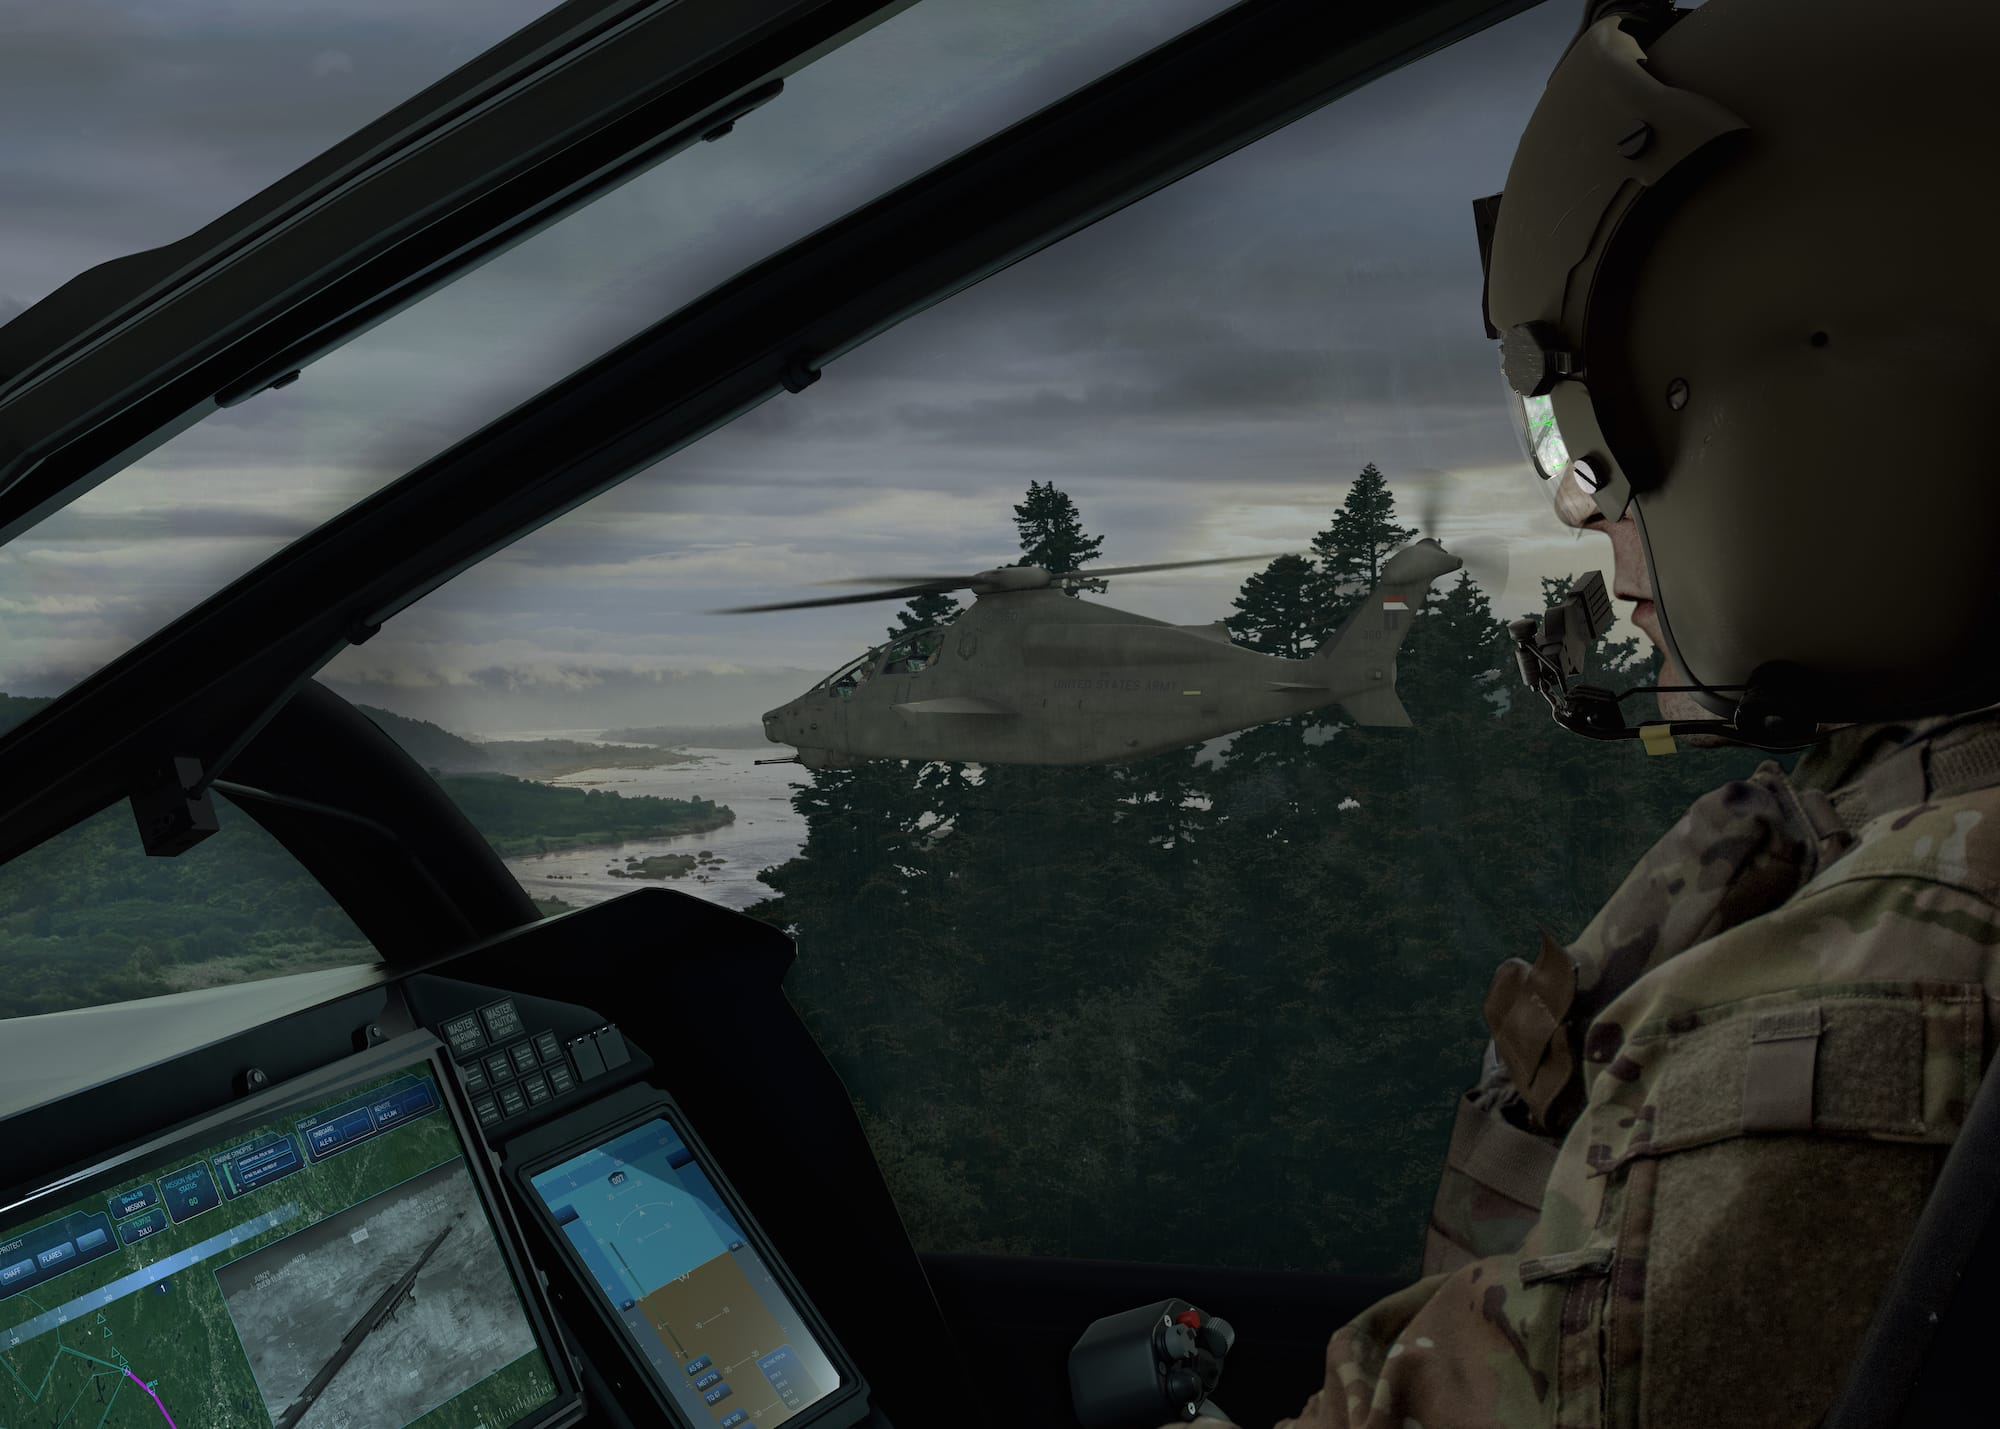 Cockpit view of the Bell 360 Invictus in flight. The Bell 360 is Bell's entry to the U.S. Army's Future Aerial Reconnaissance Aircraft (FARA) and Future Vertical Lift (FVL) competition.